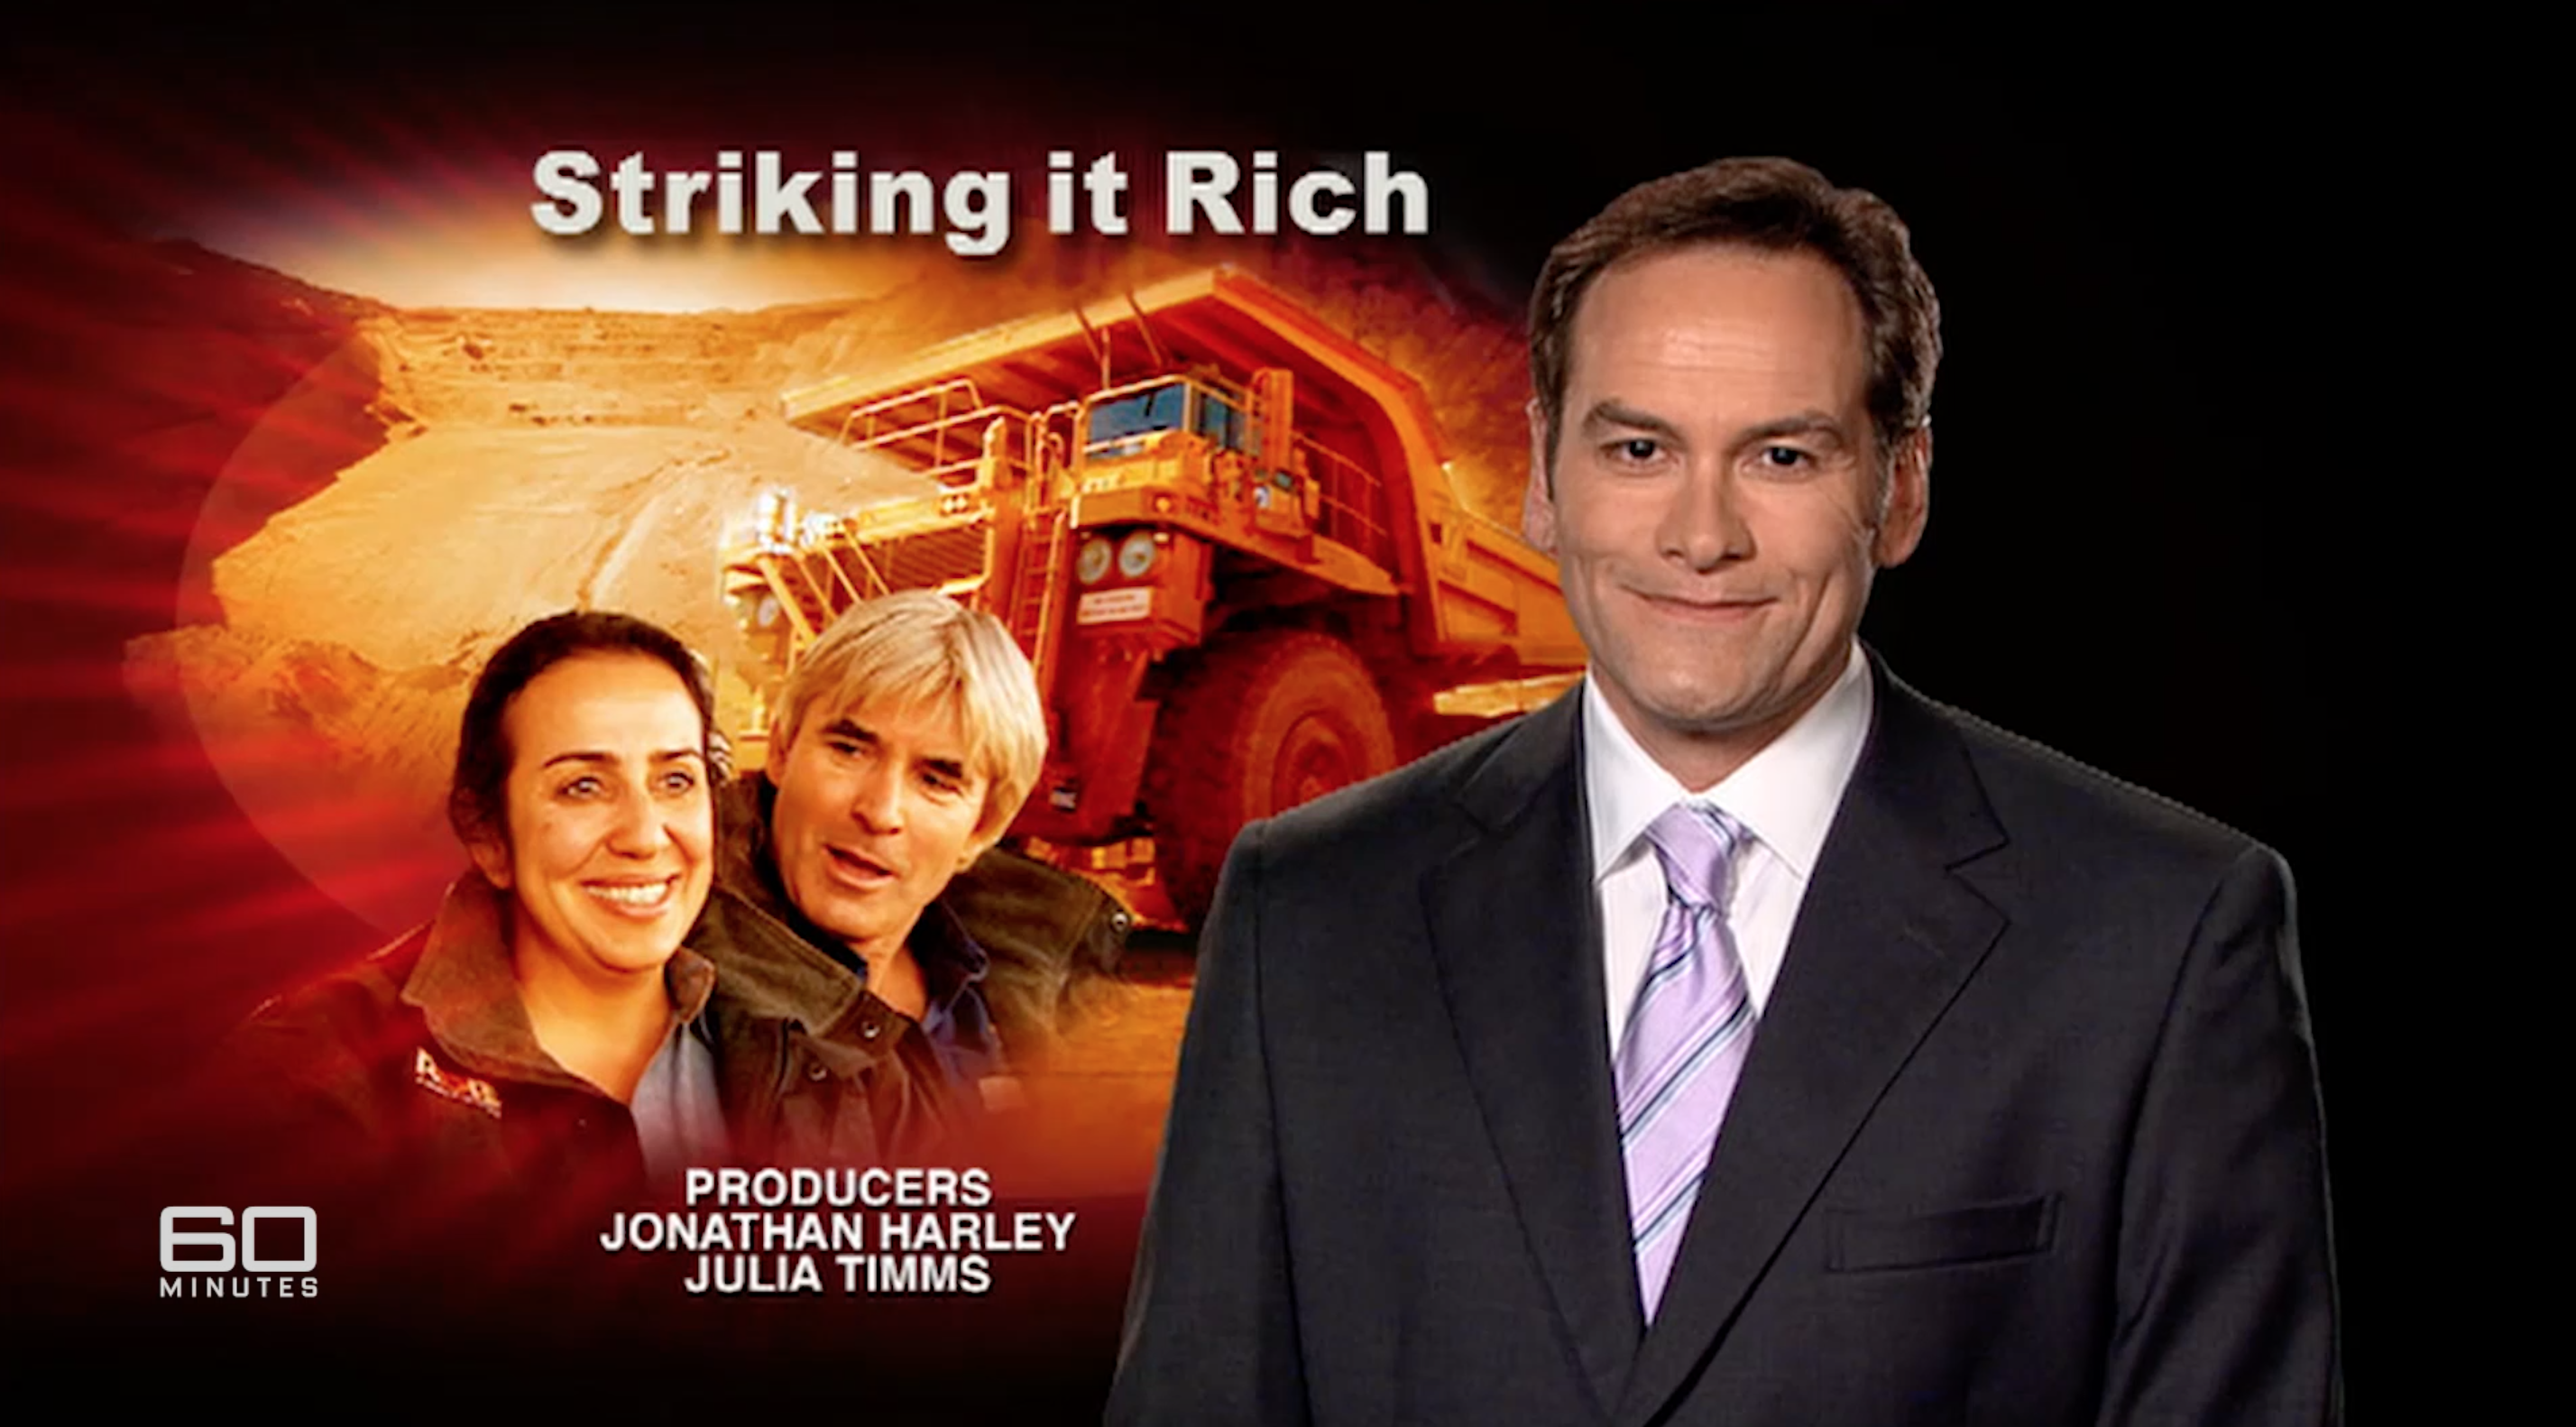 Striking it rich (2007)